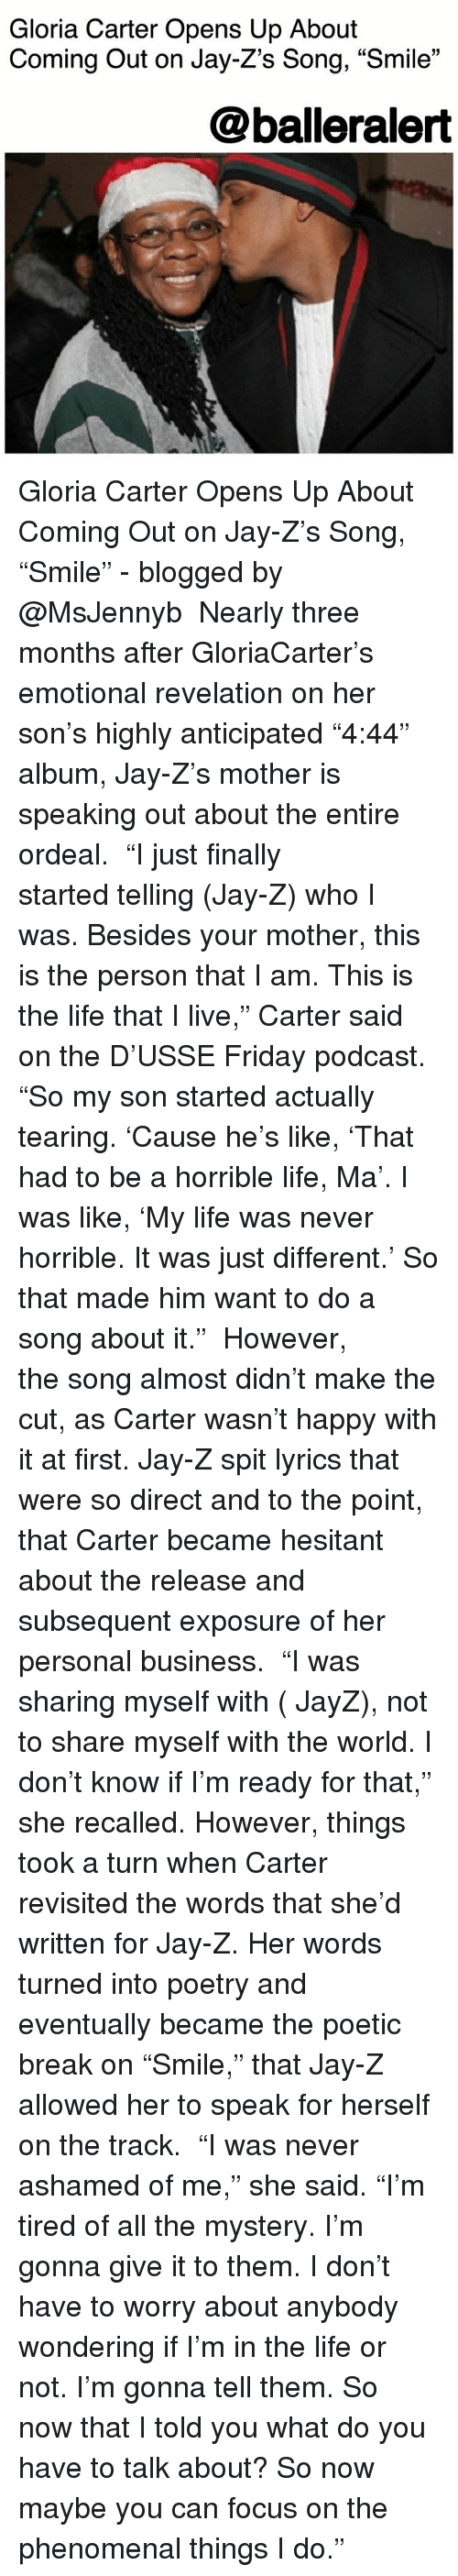 "Friday, Jay, and Jay Z: Gloria Carter Opens Up About  Coming Out on Jay-Z's Song, ""Smile""  @balleralert Gloria Carter Opens Up About Coming Out on Jay-Z's Song, ""Smile"" - blogged by @MsJennyb ⠀⠀⠀⠀⠀⠀⠀⠀⠀ Nearly three months after GloriaCarter's emotional revelation on her son's highly anticipated ""4:44"" album, Jay-Z's mother is speaking out about the entire ordeal. ⠀⠀⠀⠀⠀⠀⠀⠀⠀ ""I just finally started telling (Jay-Z) who I was. Besides your mother, this is the person that I am. This is the life that I live,"" Carter said on the D'USSE Friday podcast. ""So my son started actually tearing. 'Cause he's like, 'That had to be a horrible life, Ma'. I was like, 'My life was never horrible. It was just different.' So that made him want to do a song about it."" ⠀⠀⠀⠀⠀⠀⠀⠀⠀ However, the song almost didn't make the cut, as Carter wasn't happy with it at first. Jay-Z spit lyrics that were so direct and to the point, that Carter became hesitant about the release and subsequent exposure of her personal business. ⠀⠀⠀⠀⠀⠀⠀⠀⠀ ""I was sharing myself with ( JayZ), not to share myself with the world. I don't know if I'm ready for that,"" she recalled. However, things took a turn when Carter revisited the words that she'd written for Jay-Z. Her words turned into poetry and eventually became the poetic break on ""Smile,"" that Jay-Z allowed her to speak for herself on the track. ⠀⠀⠀⠀⠀⠀⠀⠀⠀ ""I was never ashamed of me,"" she said. ""I'm tired of all the mystery. I'm gonna give it to them. I don't have to worry about anybody wondering if I'm in the life or not. I'm gonna tell them. So now that I told you what do you have to talk about? So now maybe you can focus on the phenomenal things I do."""